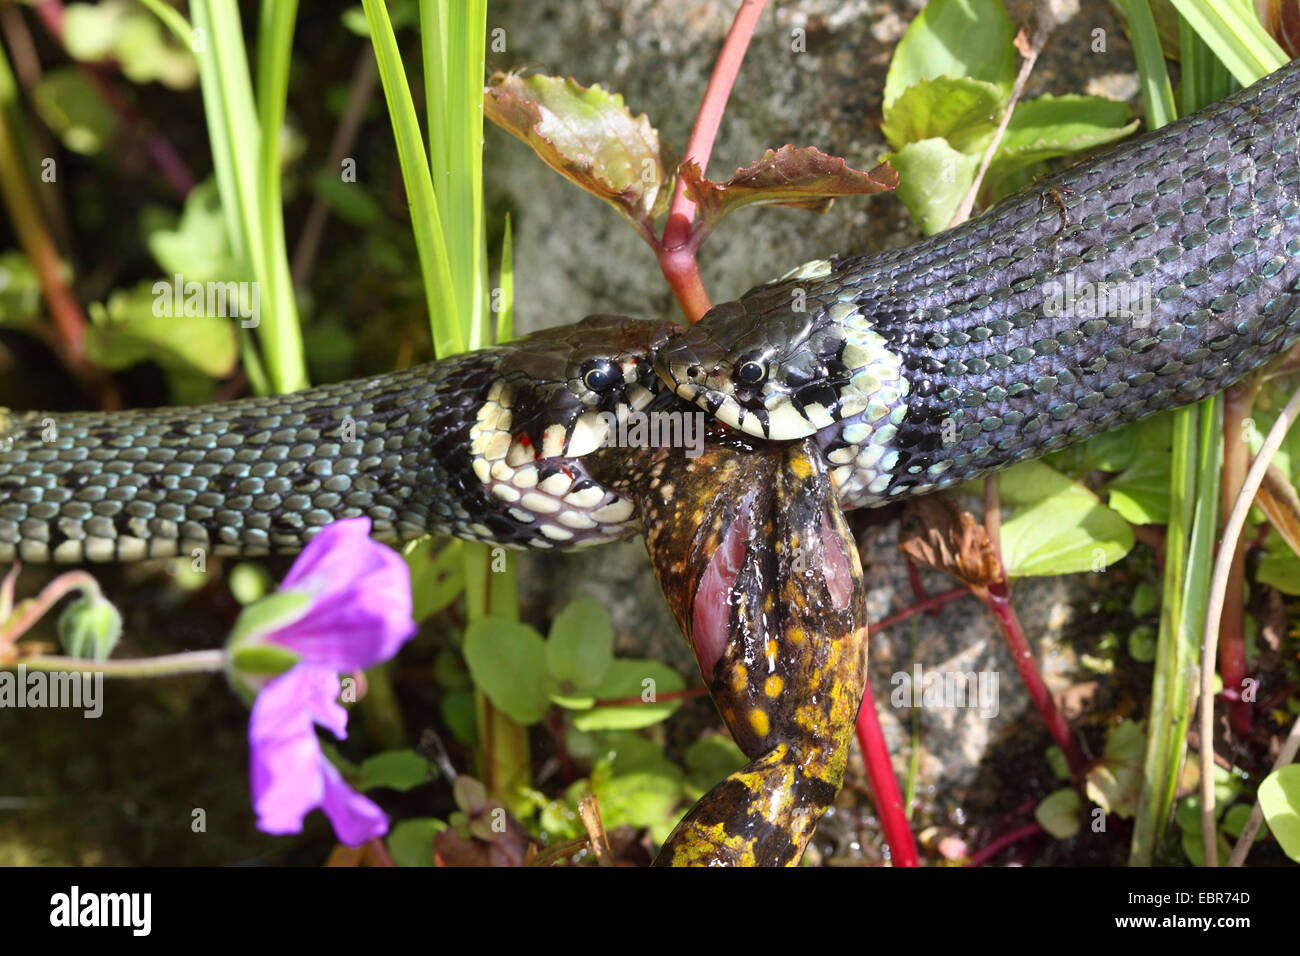 grass snake (Natrix natrix), series picture 7, two snakes fighting for a frog, Germany, Mecklenburg-Western Pomerania - Stock Image